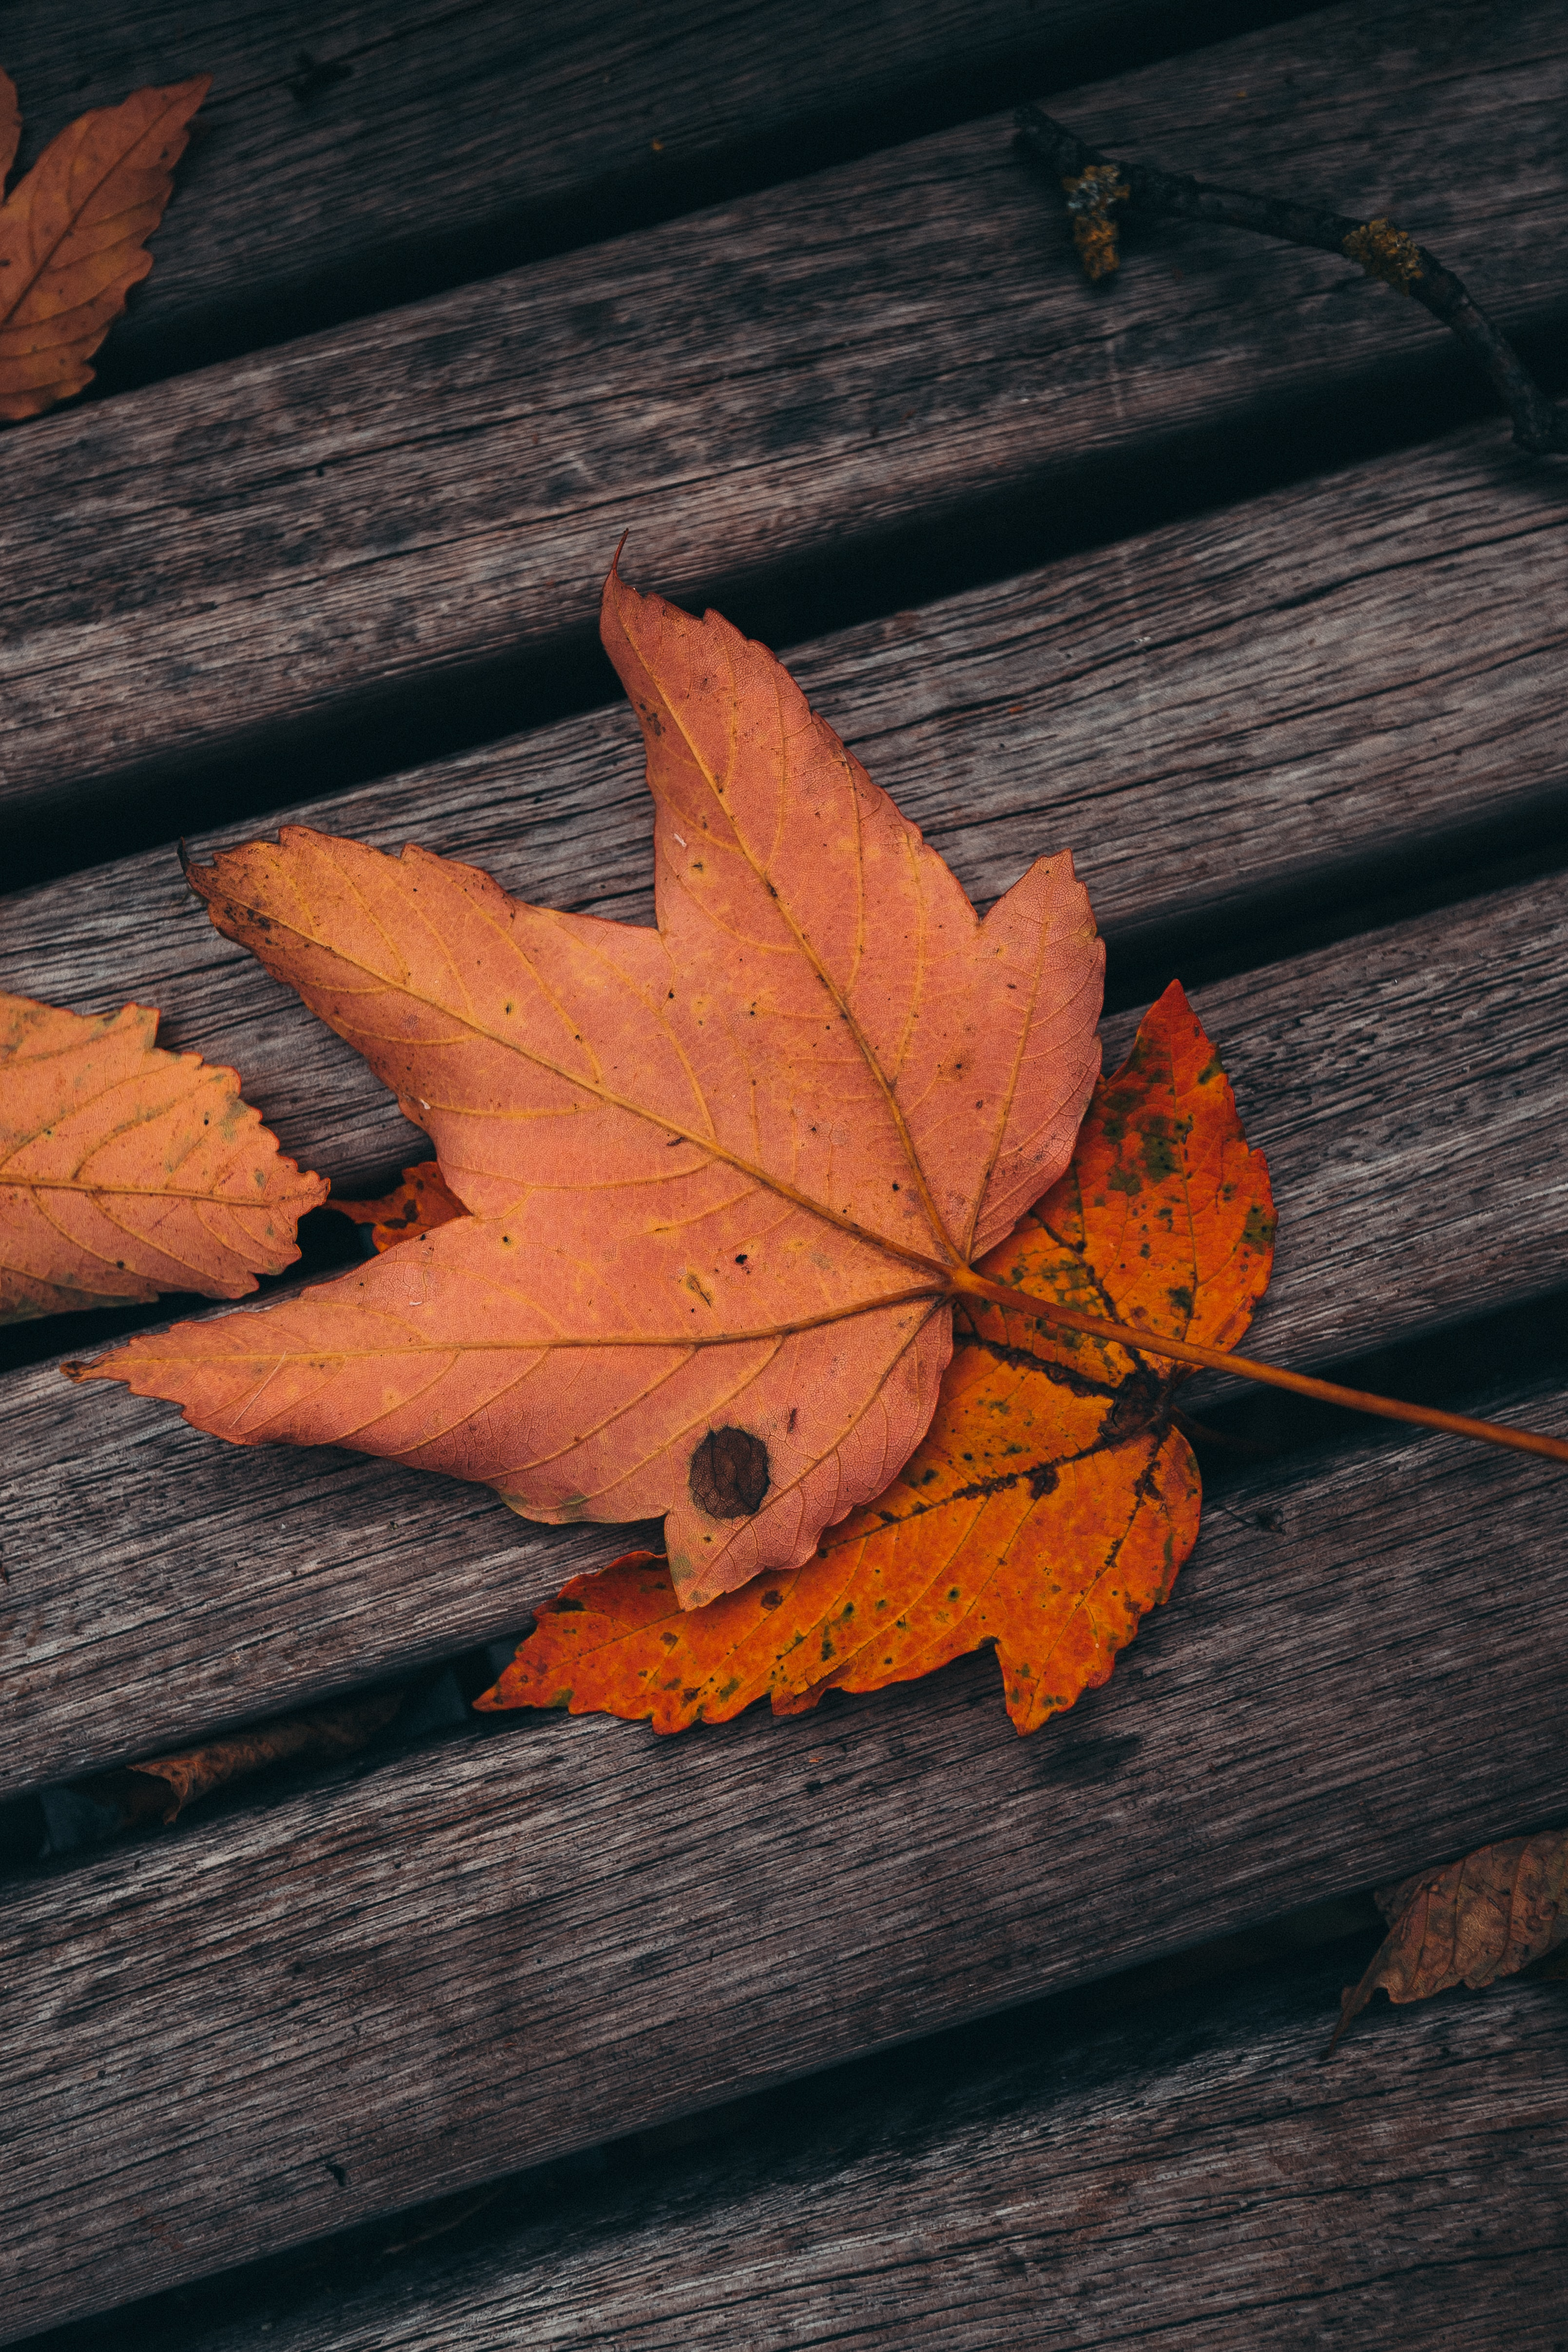 81406 download wallpaper Miscellanea, Miscellaneous, Maple, Leaves, Autumn, Planks, Board, Wood, Wooden screensavers and pictures for free